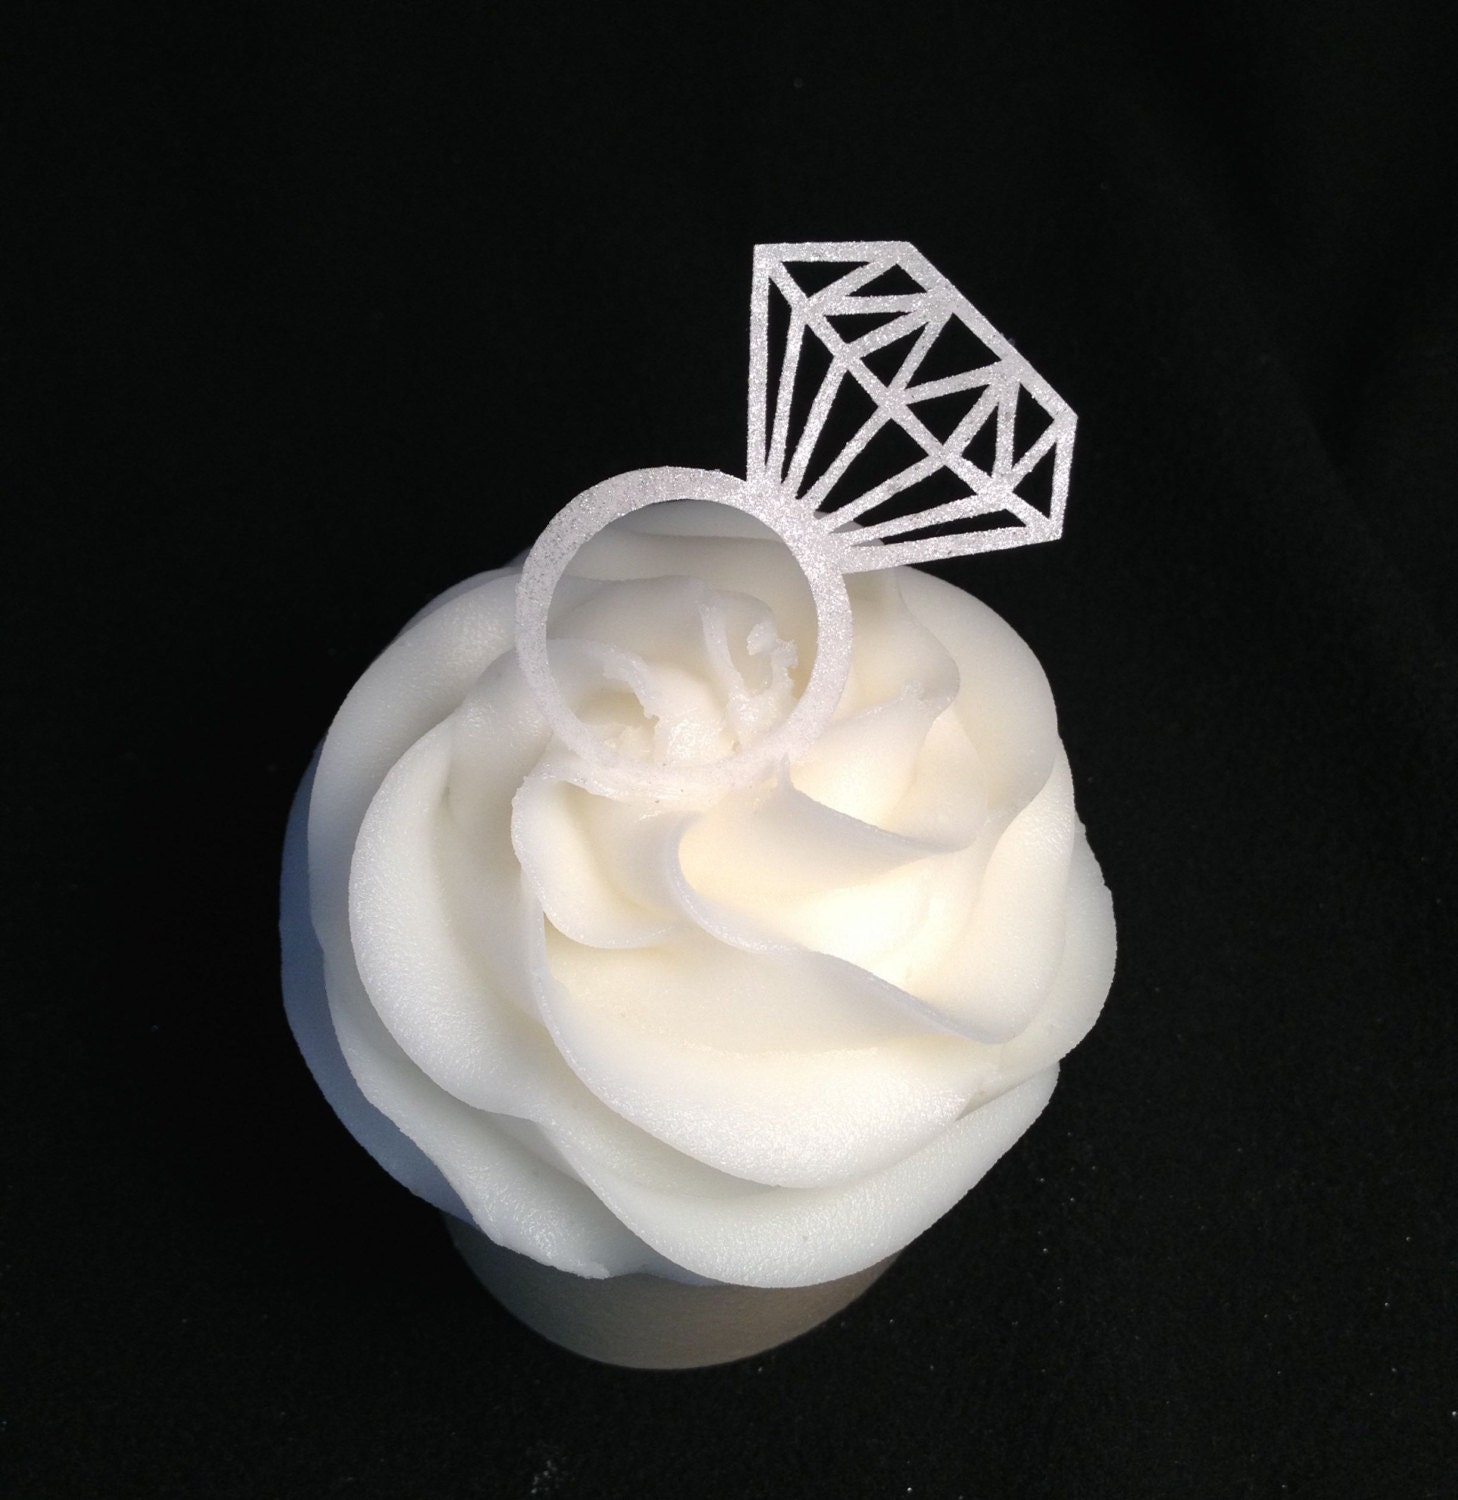 Engagement Ring Cake Decorations : Diamond Ring Thin Edible Paper Cupcake Toppers Engagement